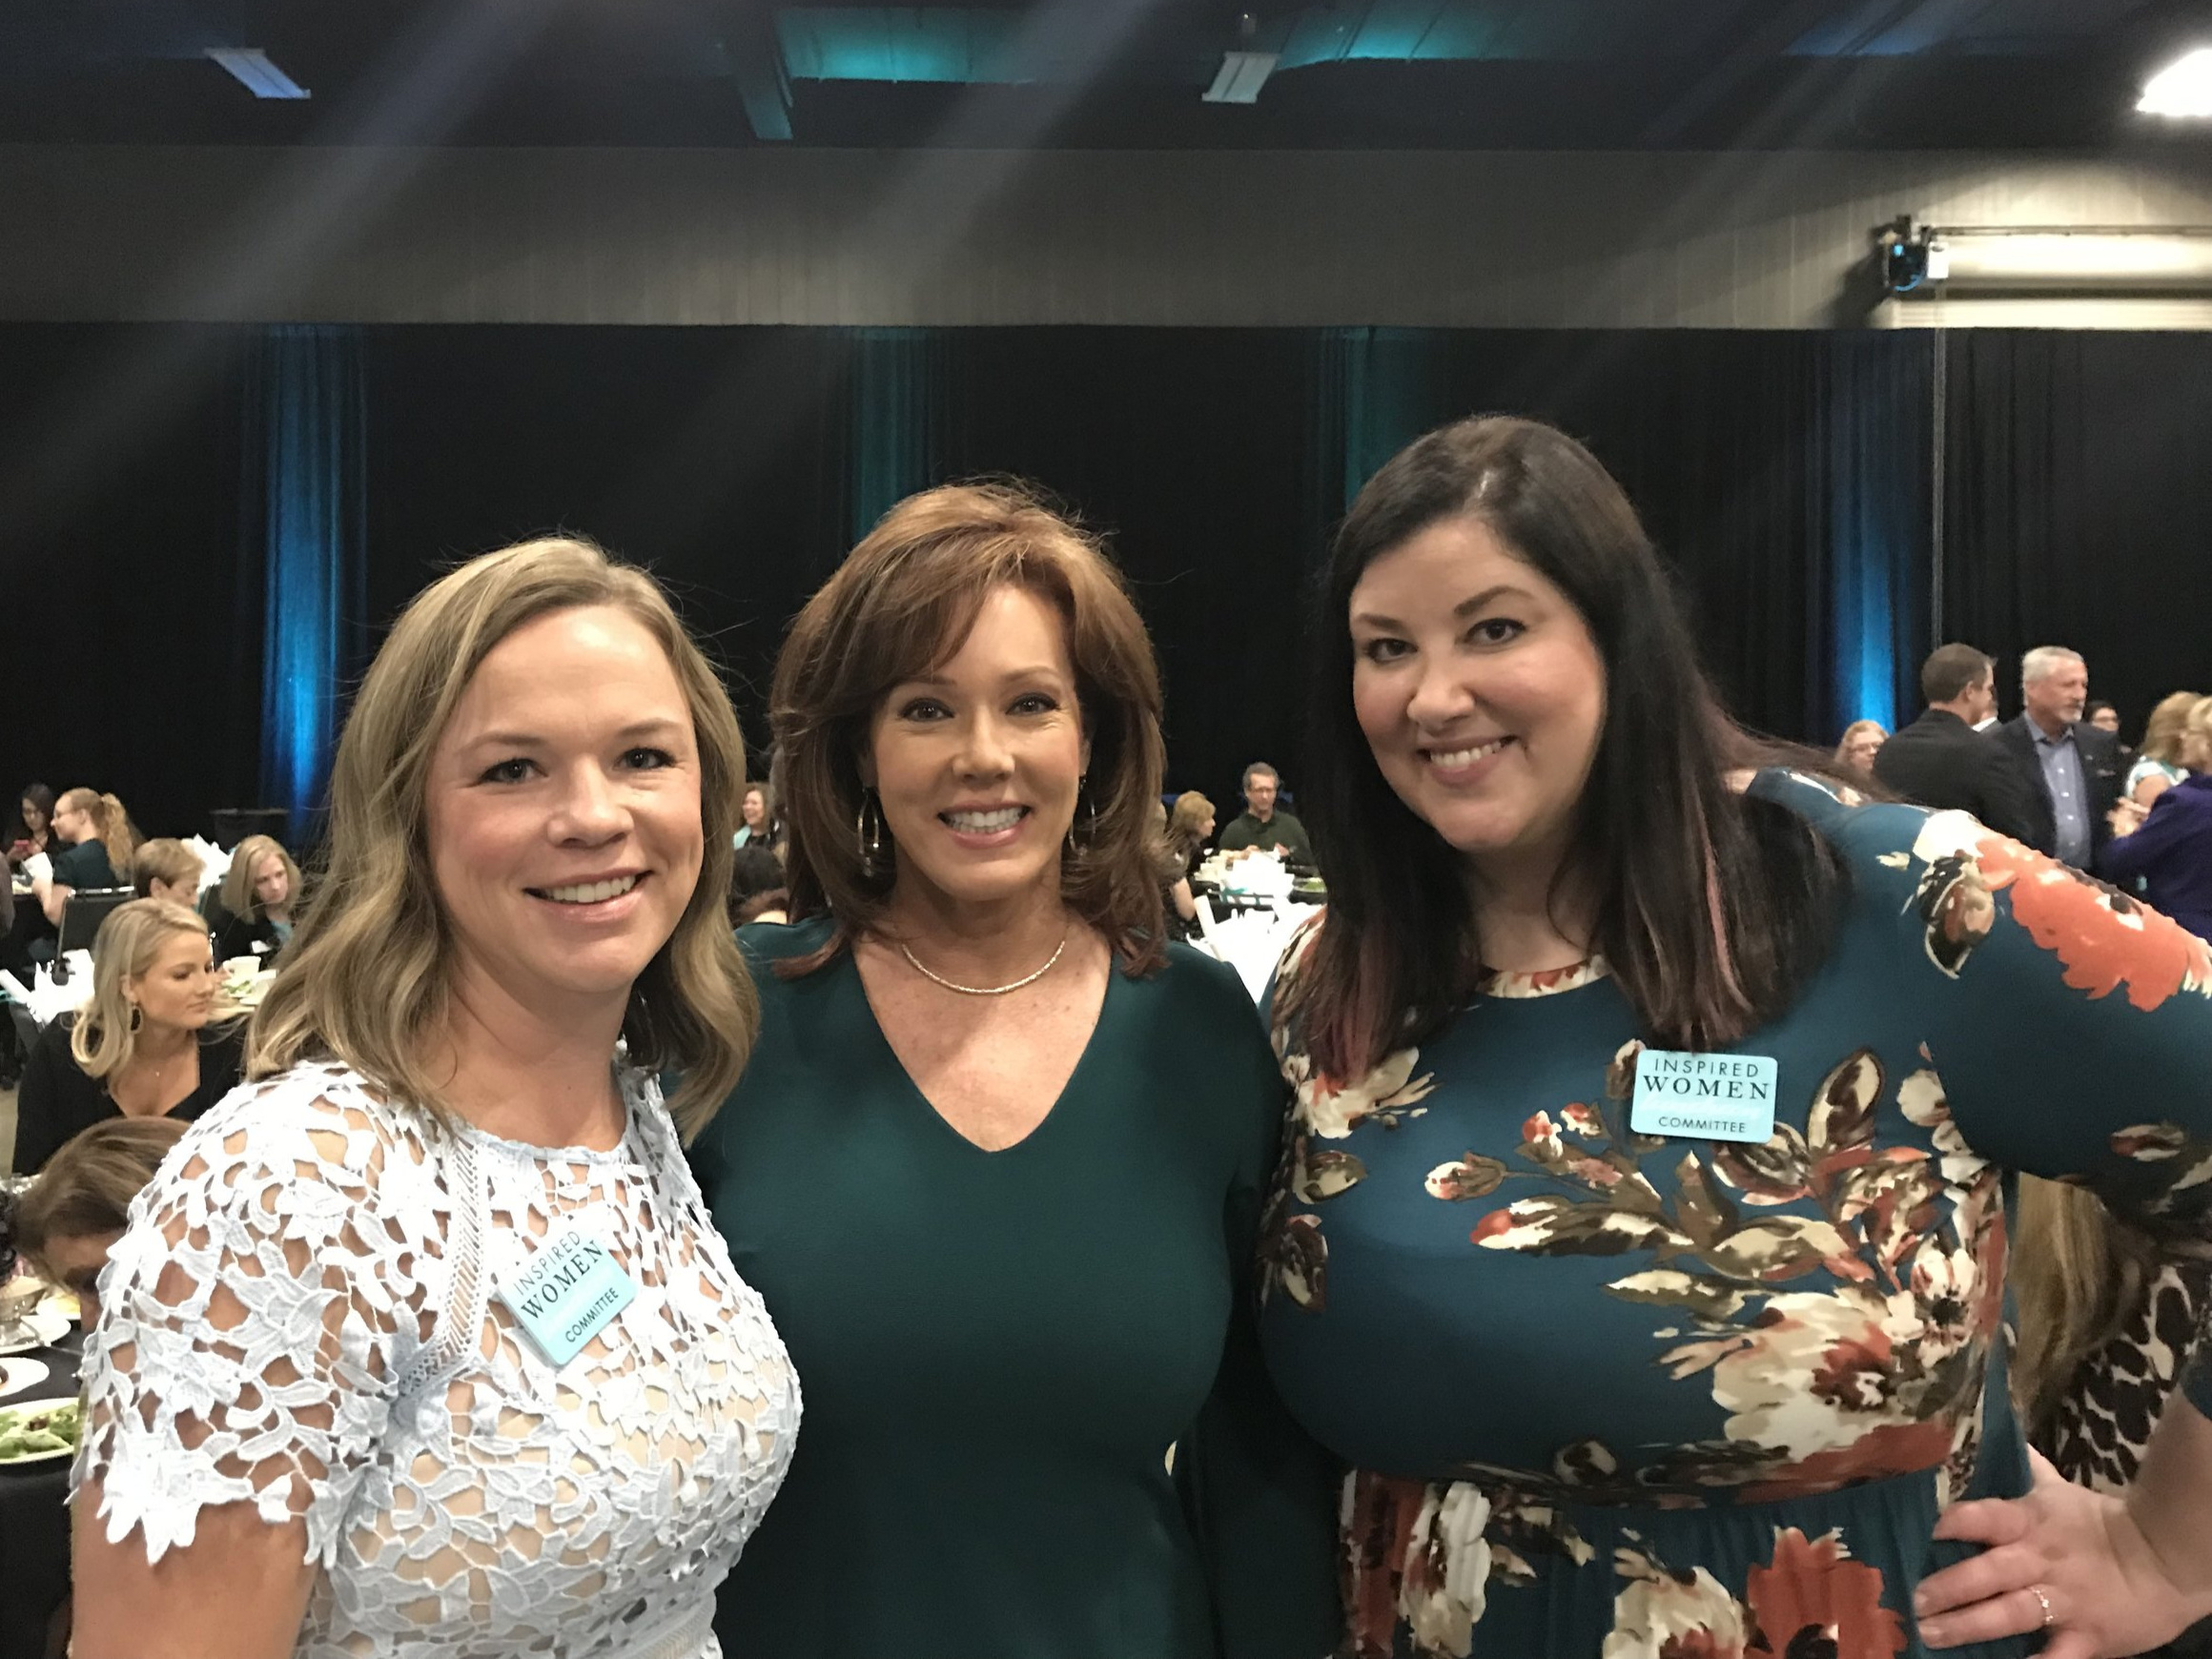 inspired-women-luncheon-2018-kelli-finglass.jpg